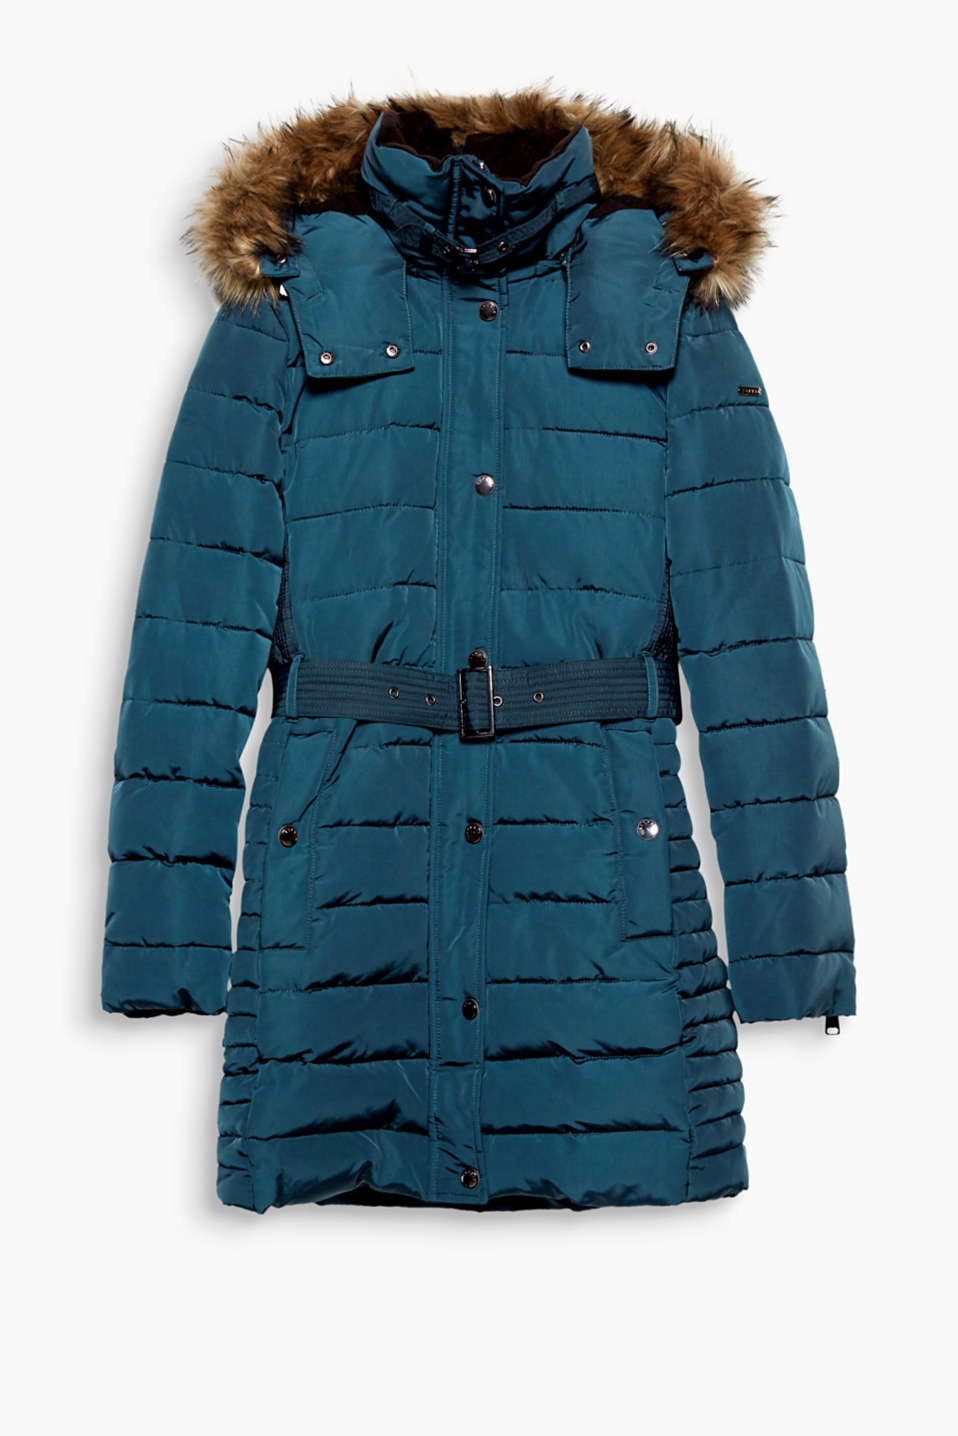 Sporty down, soft fake fur - when the days get colder, we want fashion AND practicality!